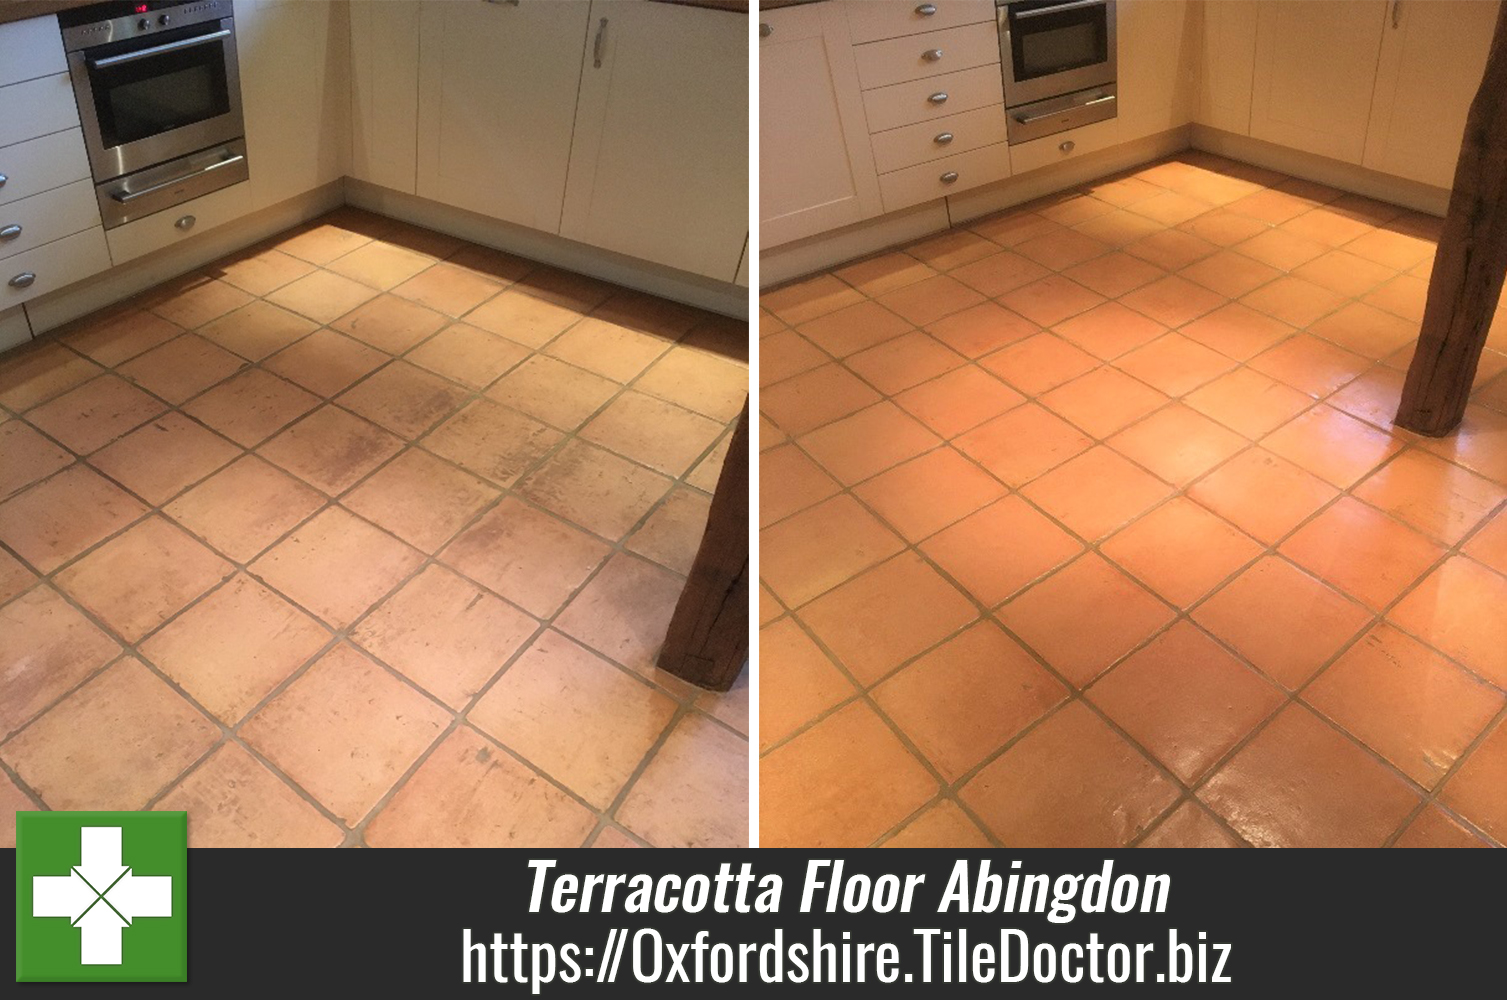 Terracotta Floor Before After Cleaning in Abingdon